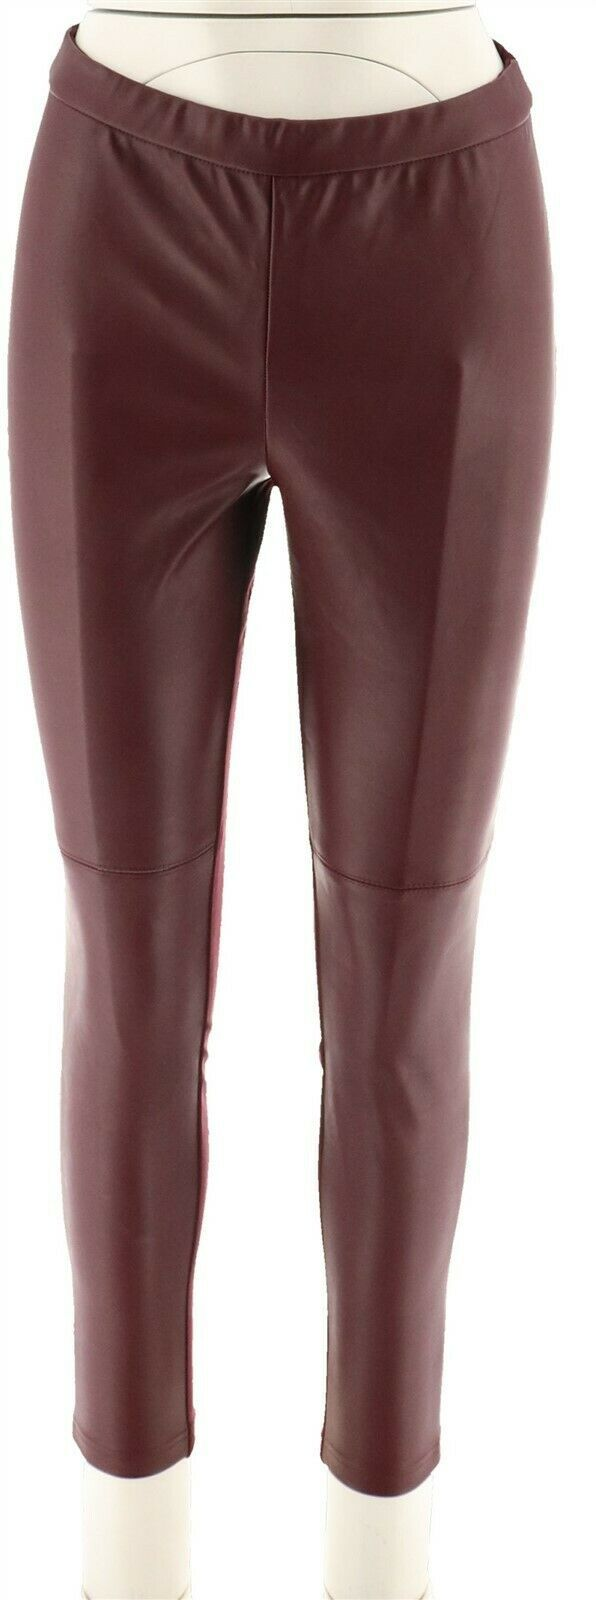 Primary image for H Halston Faux Stretch Leather Ponte Pull On Leggings Bordeaux 2 NEW A294046